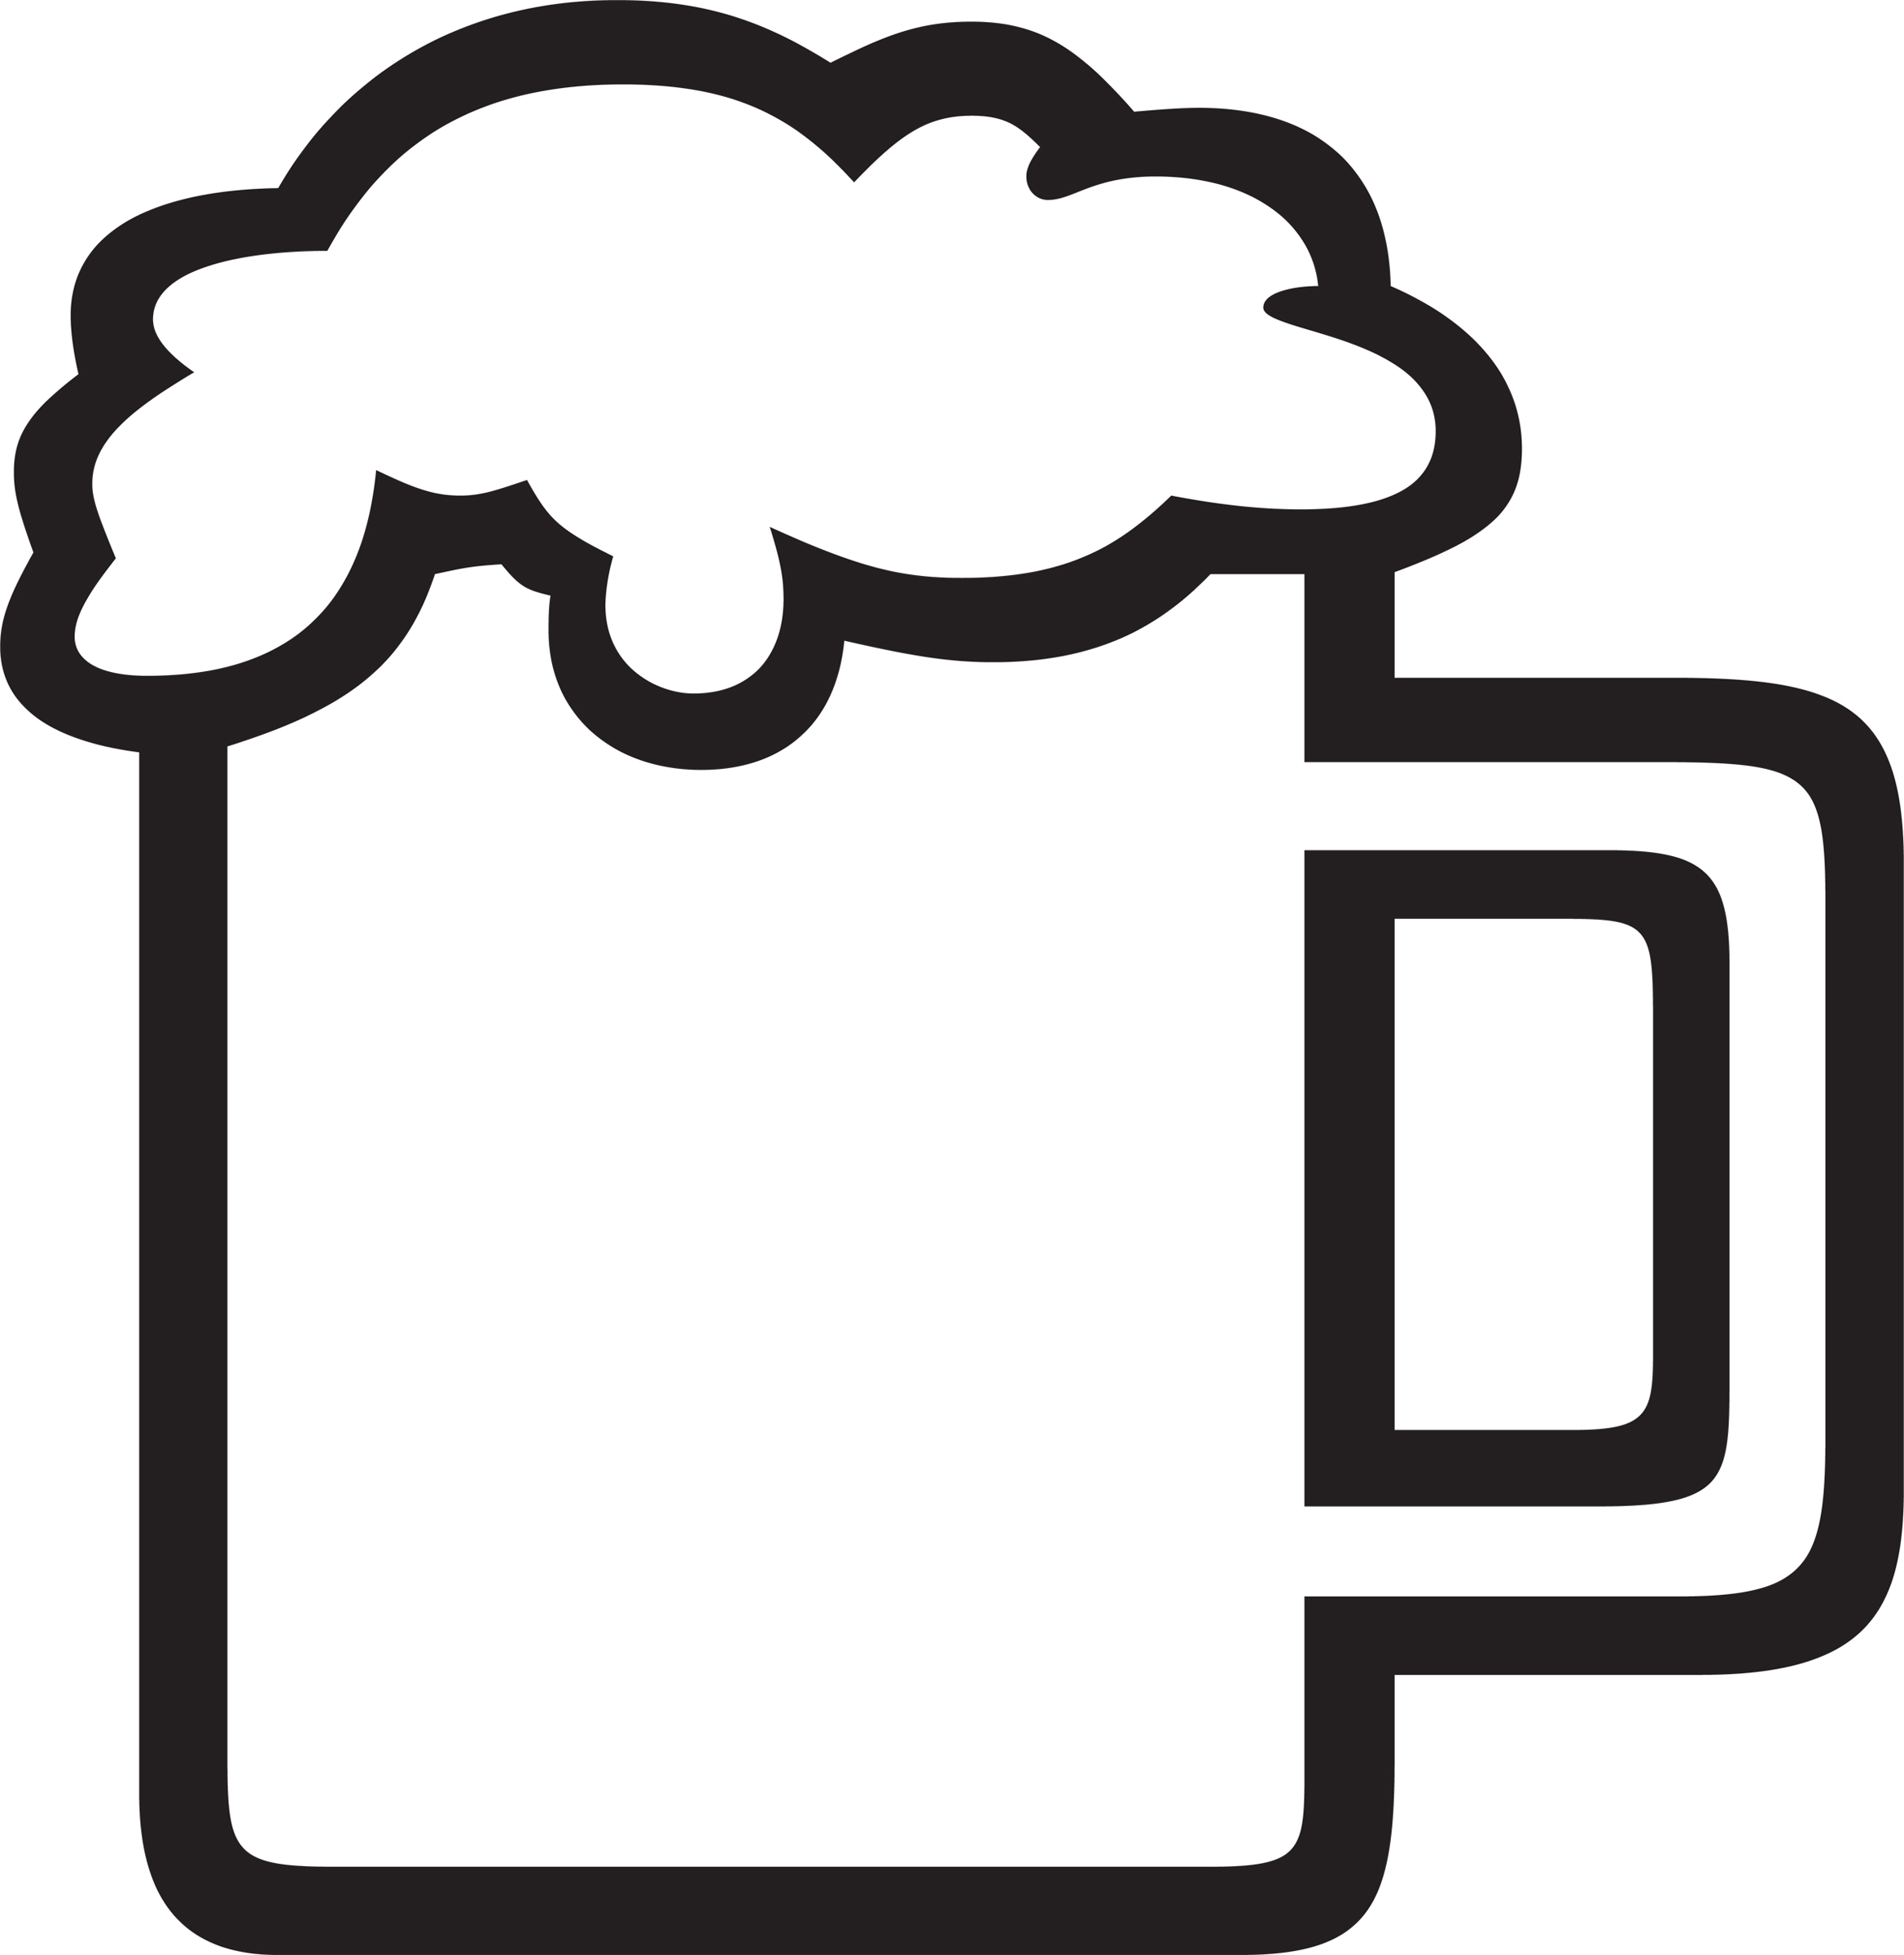 Beer Mug Images - Cliparts.co